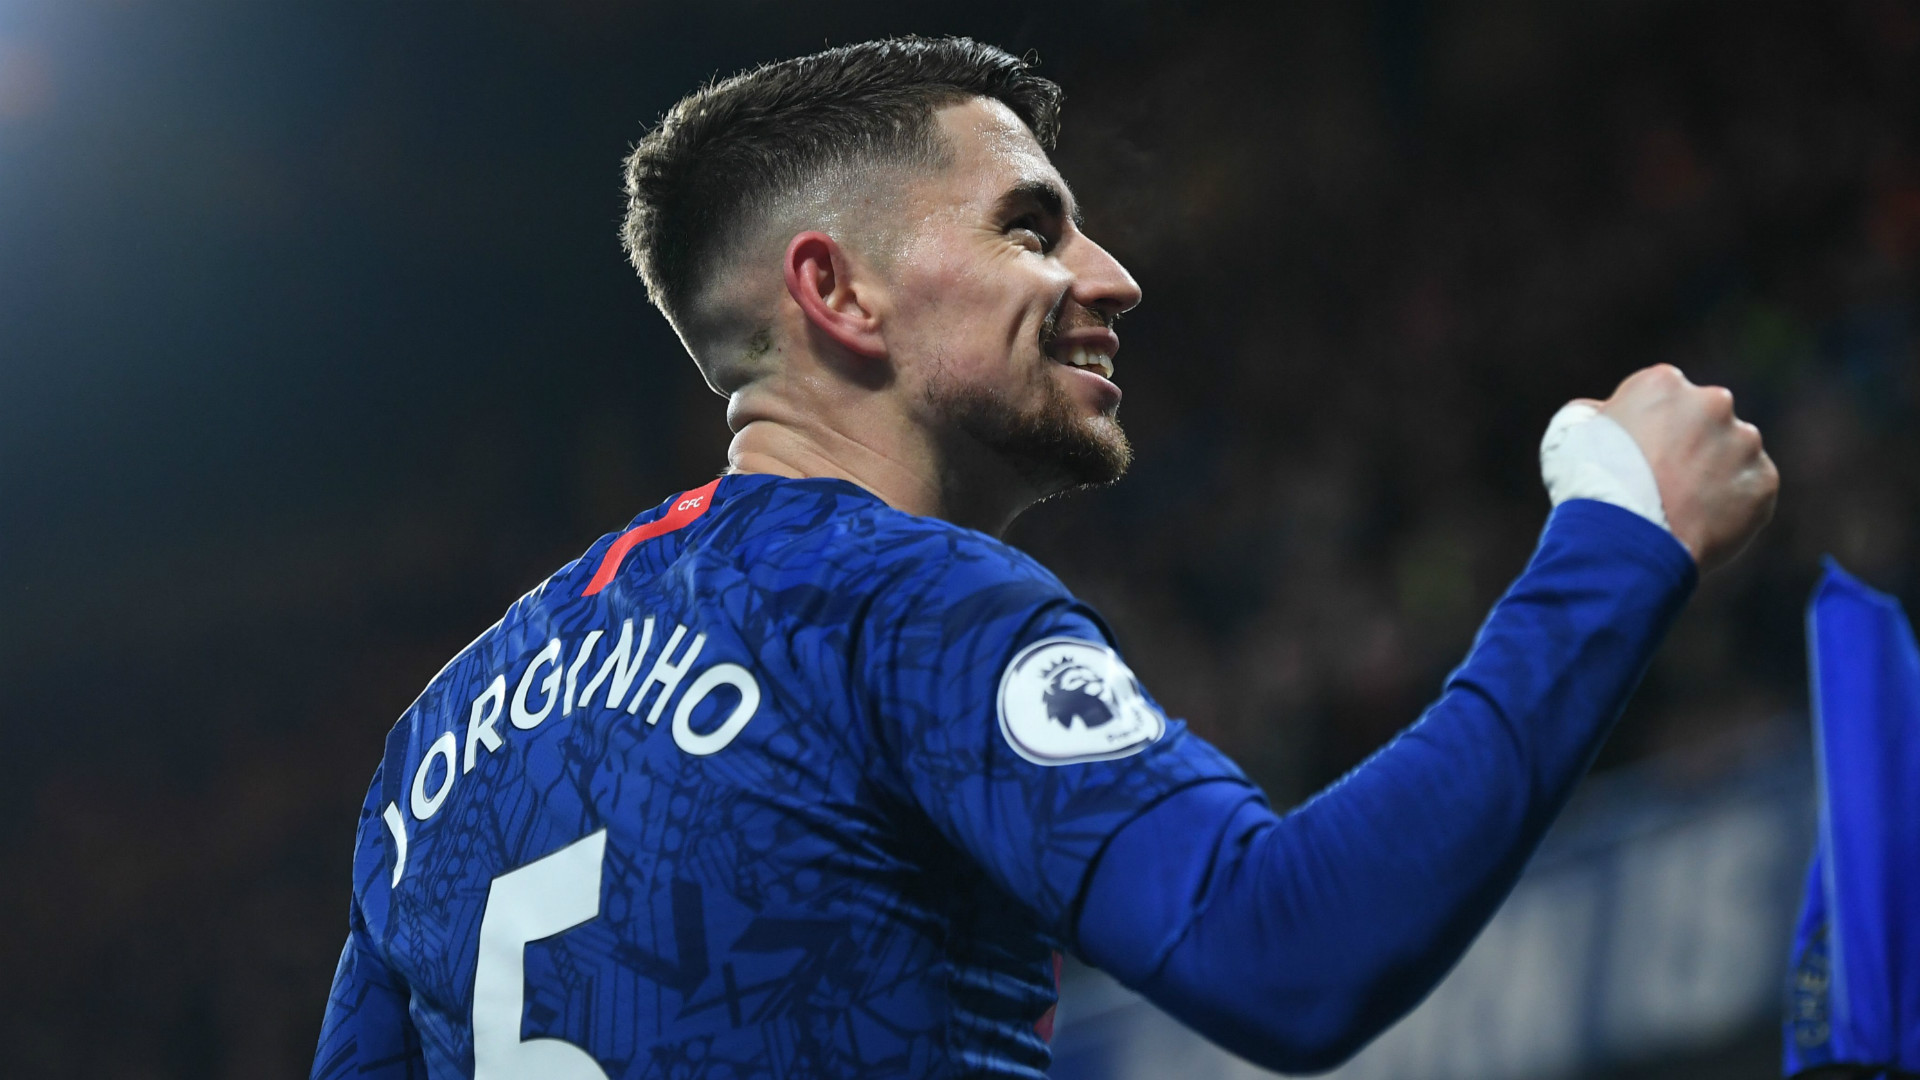 Jorginho's agent reacts to Juventus rumours and talk of Sarri reunion for Chelsea midfielder